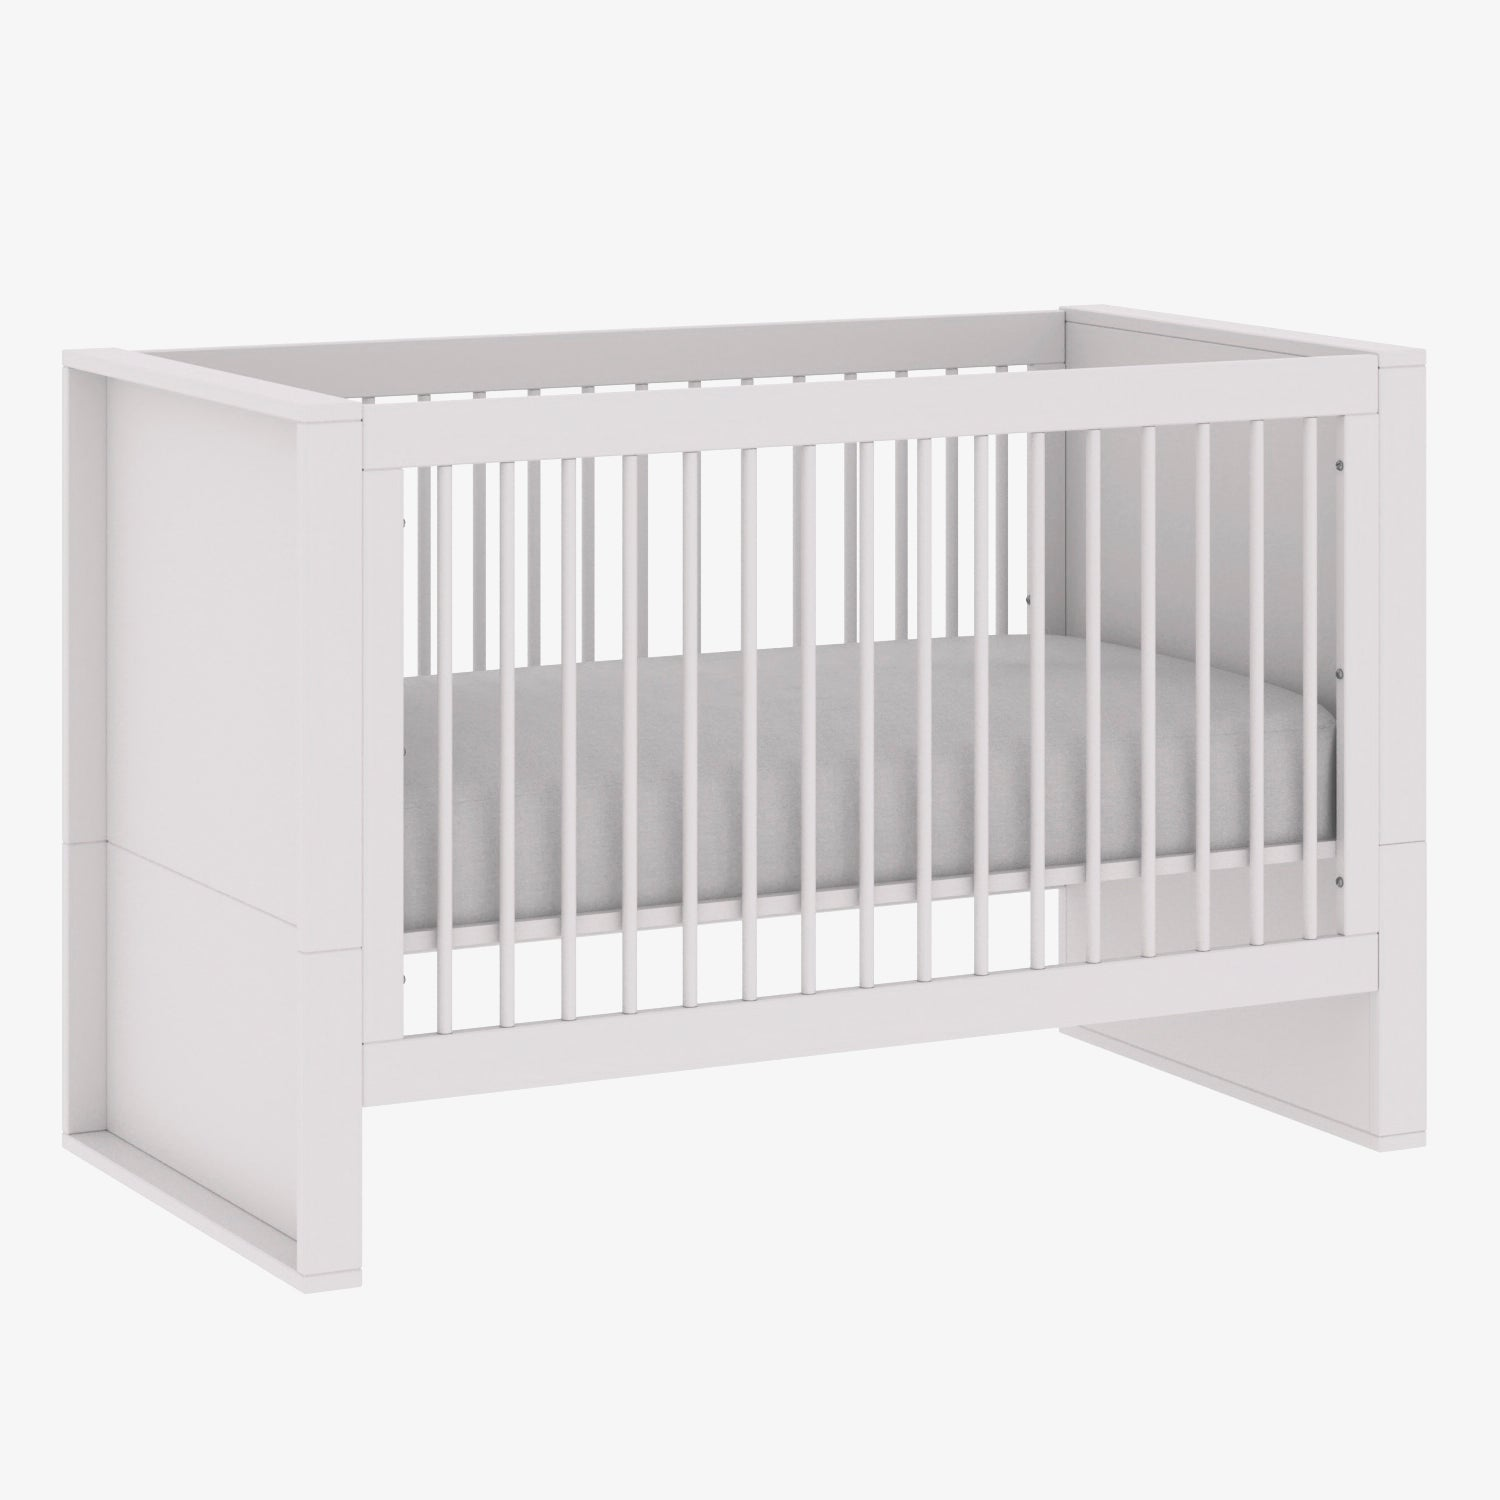 Milk Collection Bundle: Crib, Dresser, Wardrobe